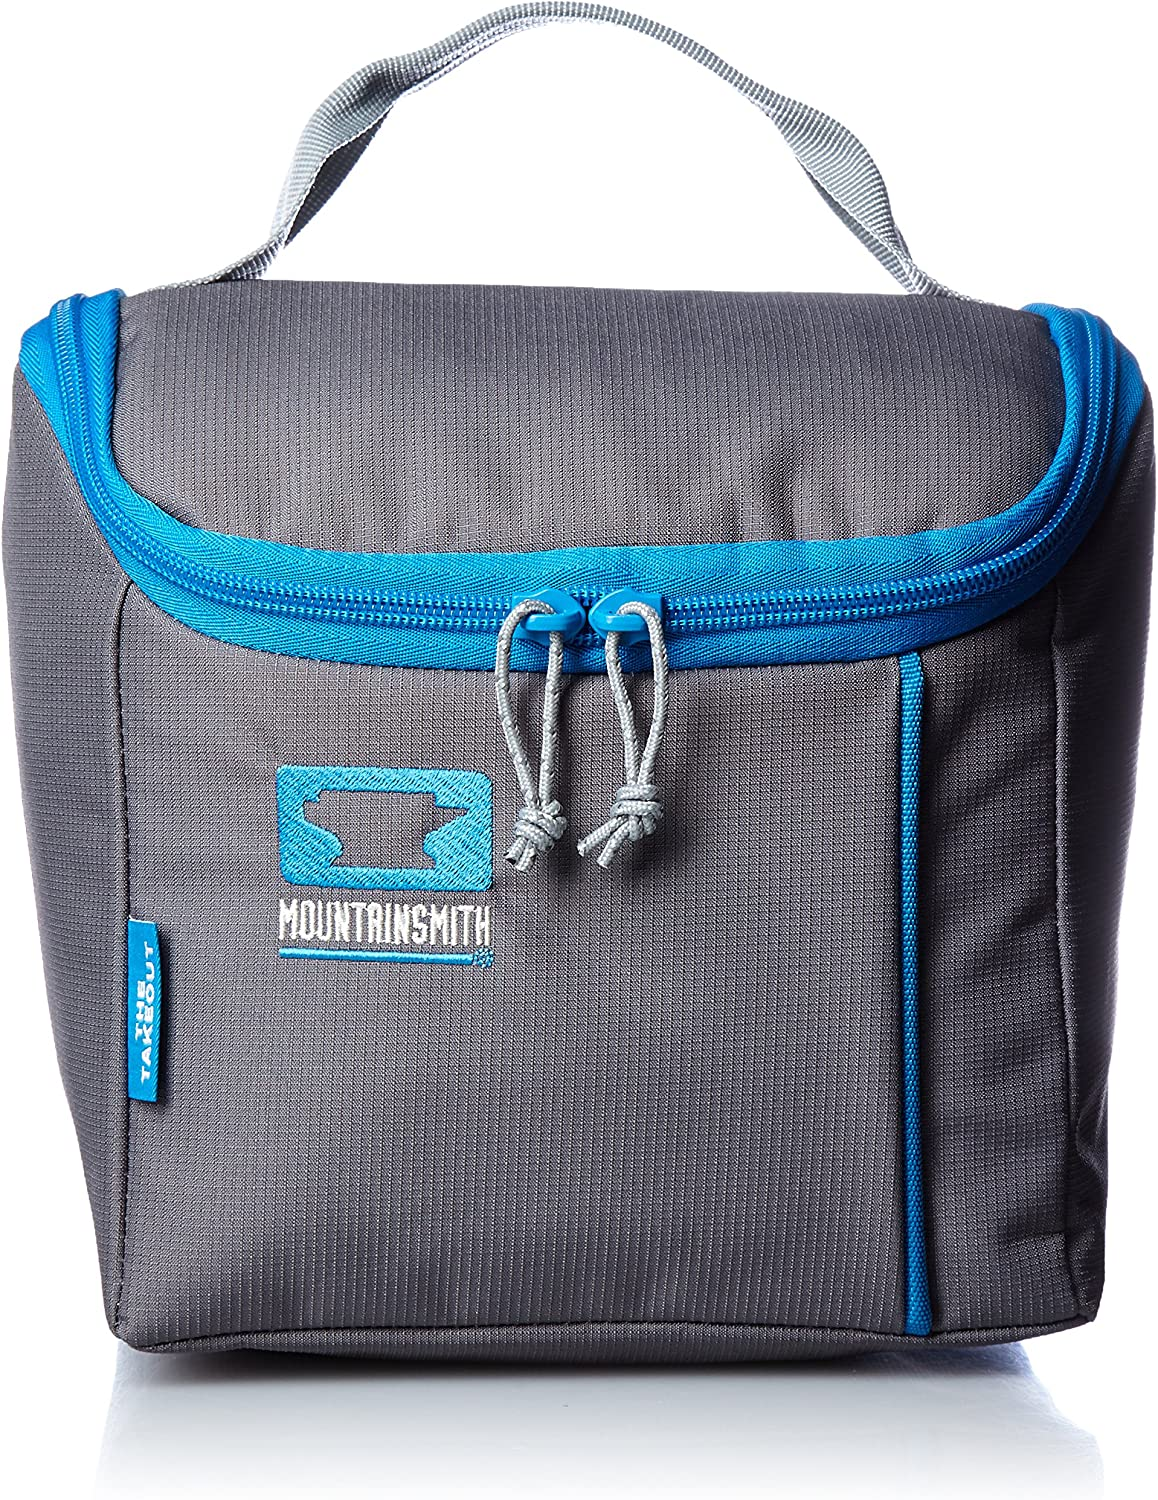 Mountainsmith The Takeout Soft Sided Coolers